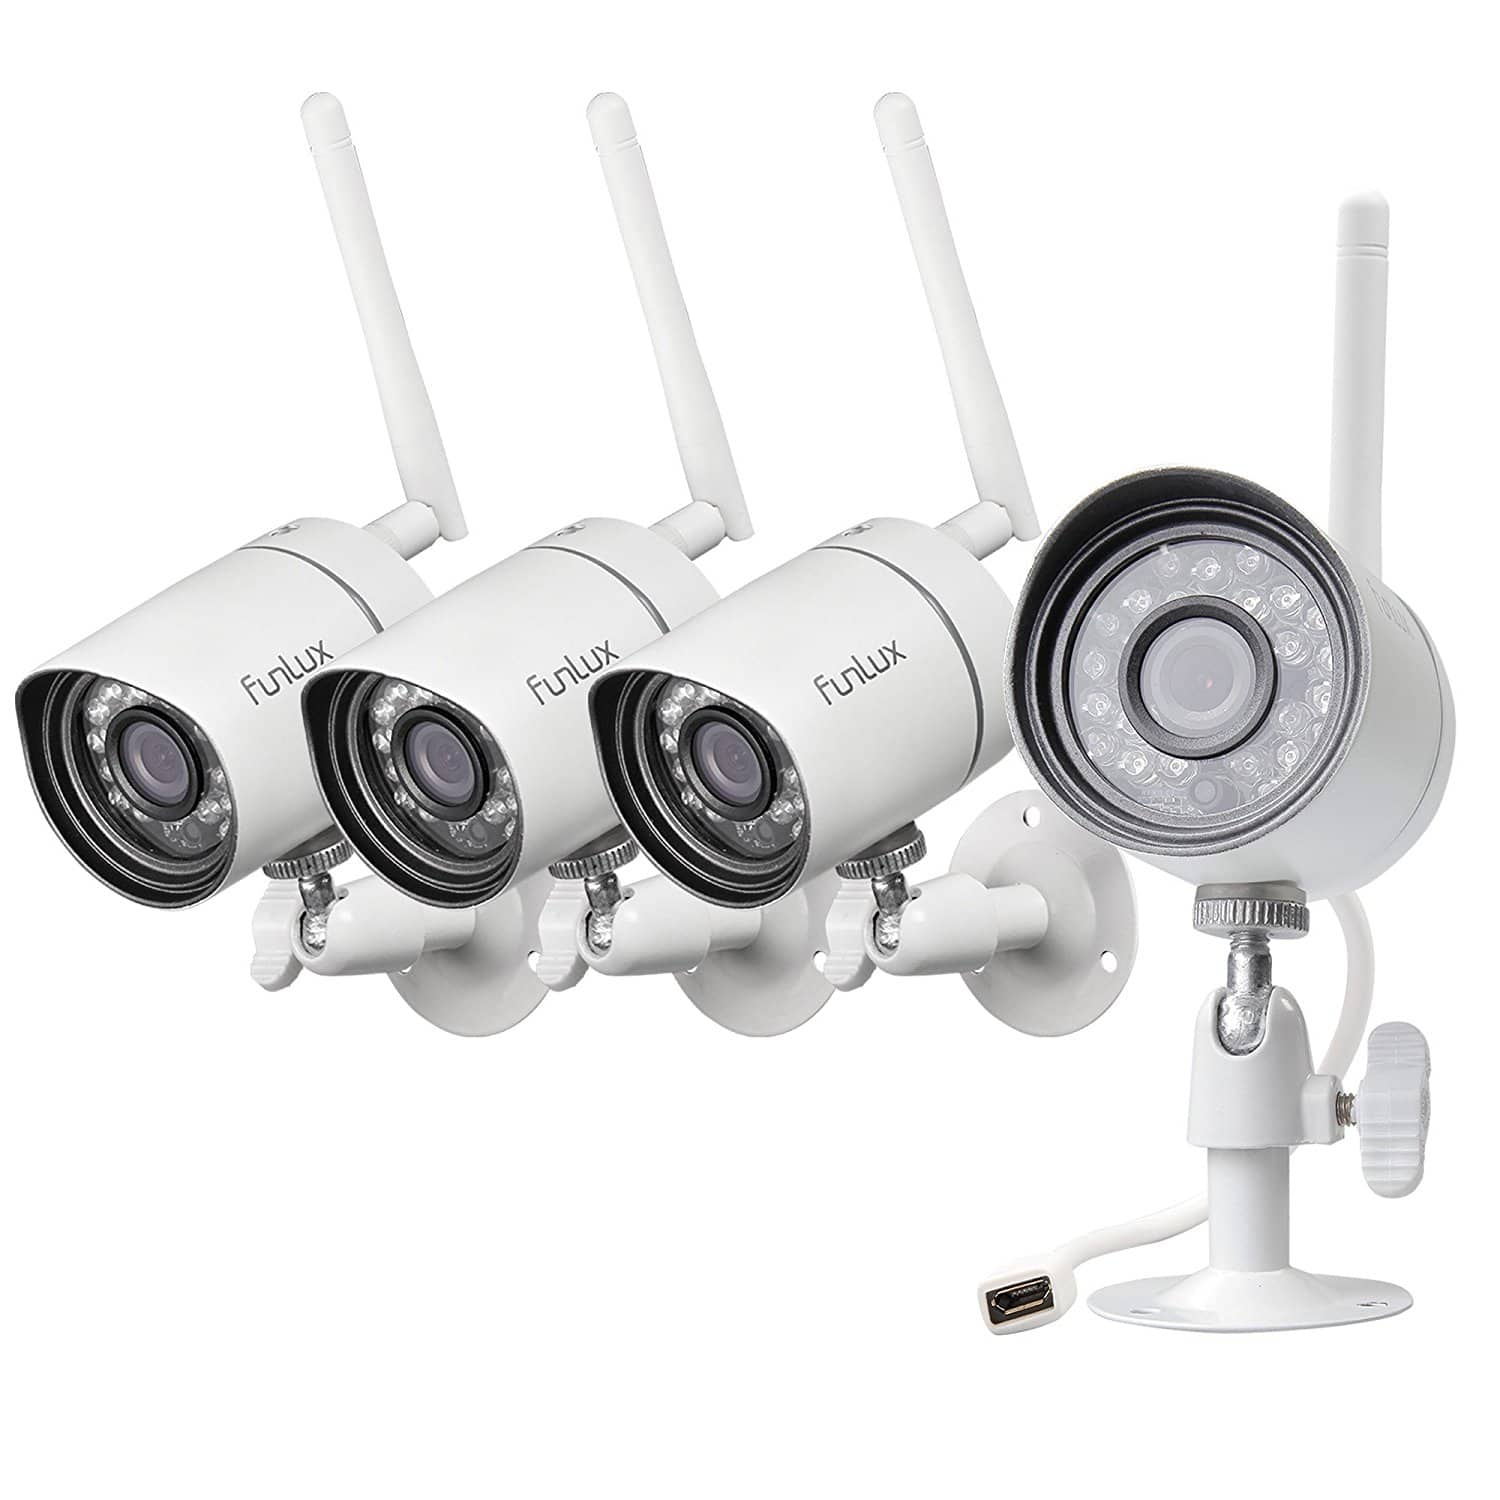 4-Pack 720p HD Outdoor Wireless Home Security Camera Surveillance System $79.99 @ Amazon + Free Shipping